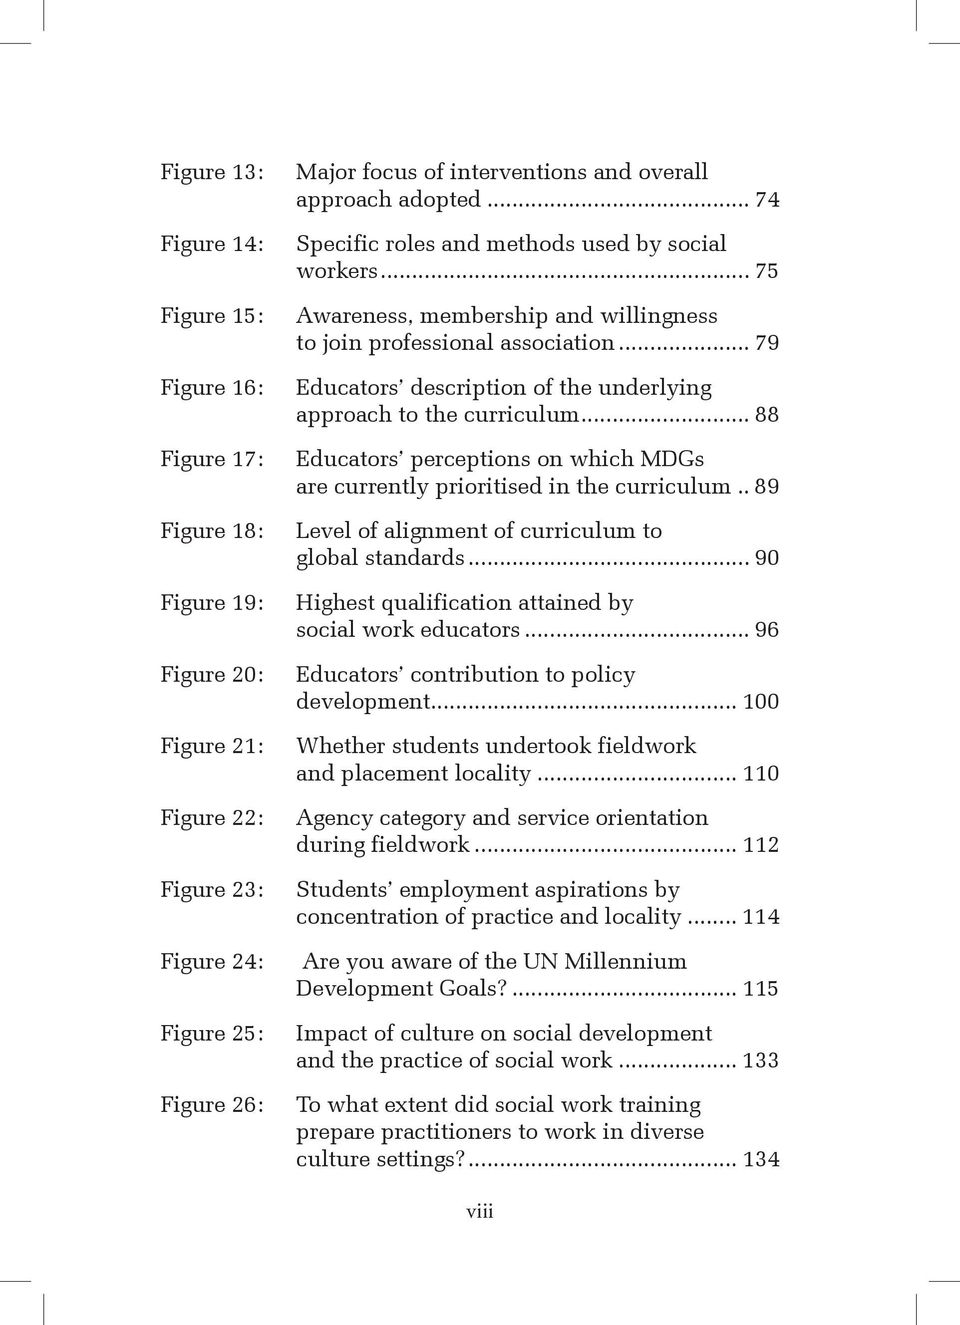 .. 88 Figure 17: Educators perceptions on which MDGs are currently prioritised in the curriculum.. 89 Figure 18: Level of alignment of curriculum to global standards.